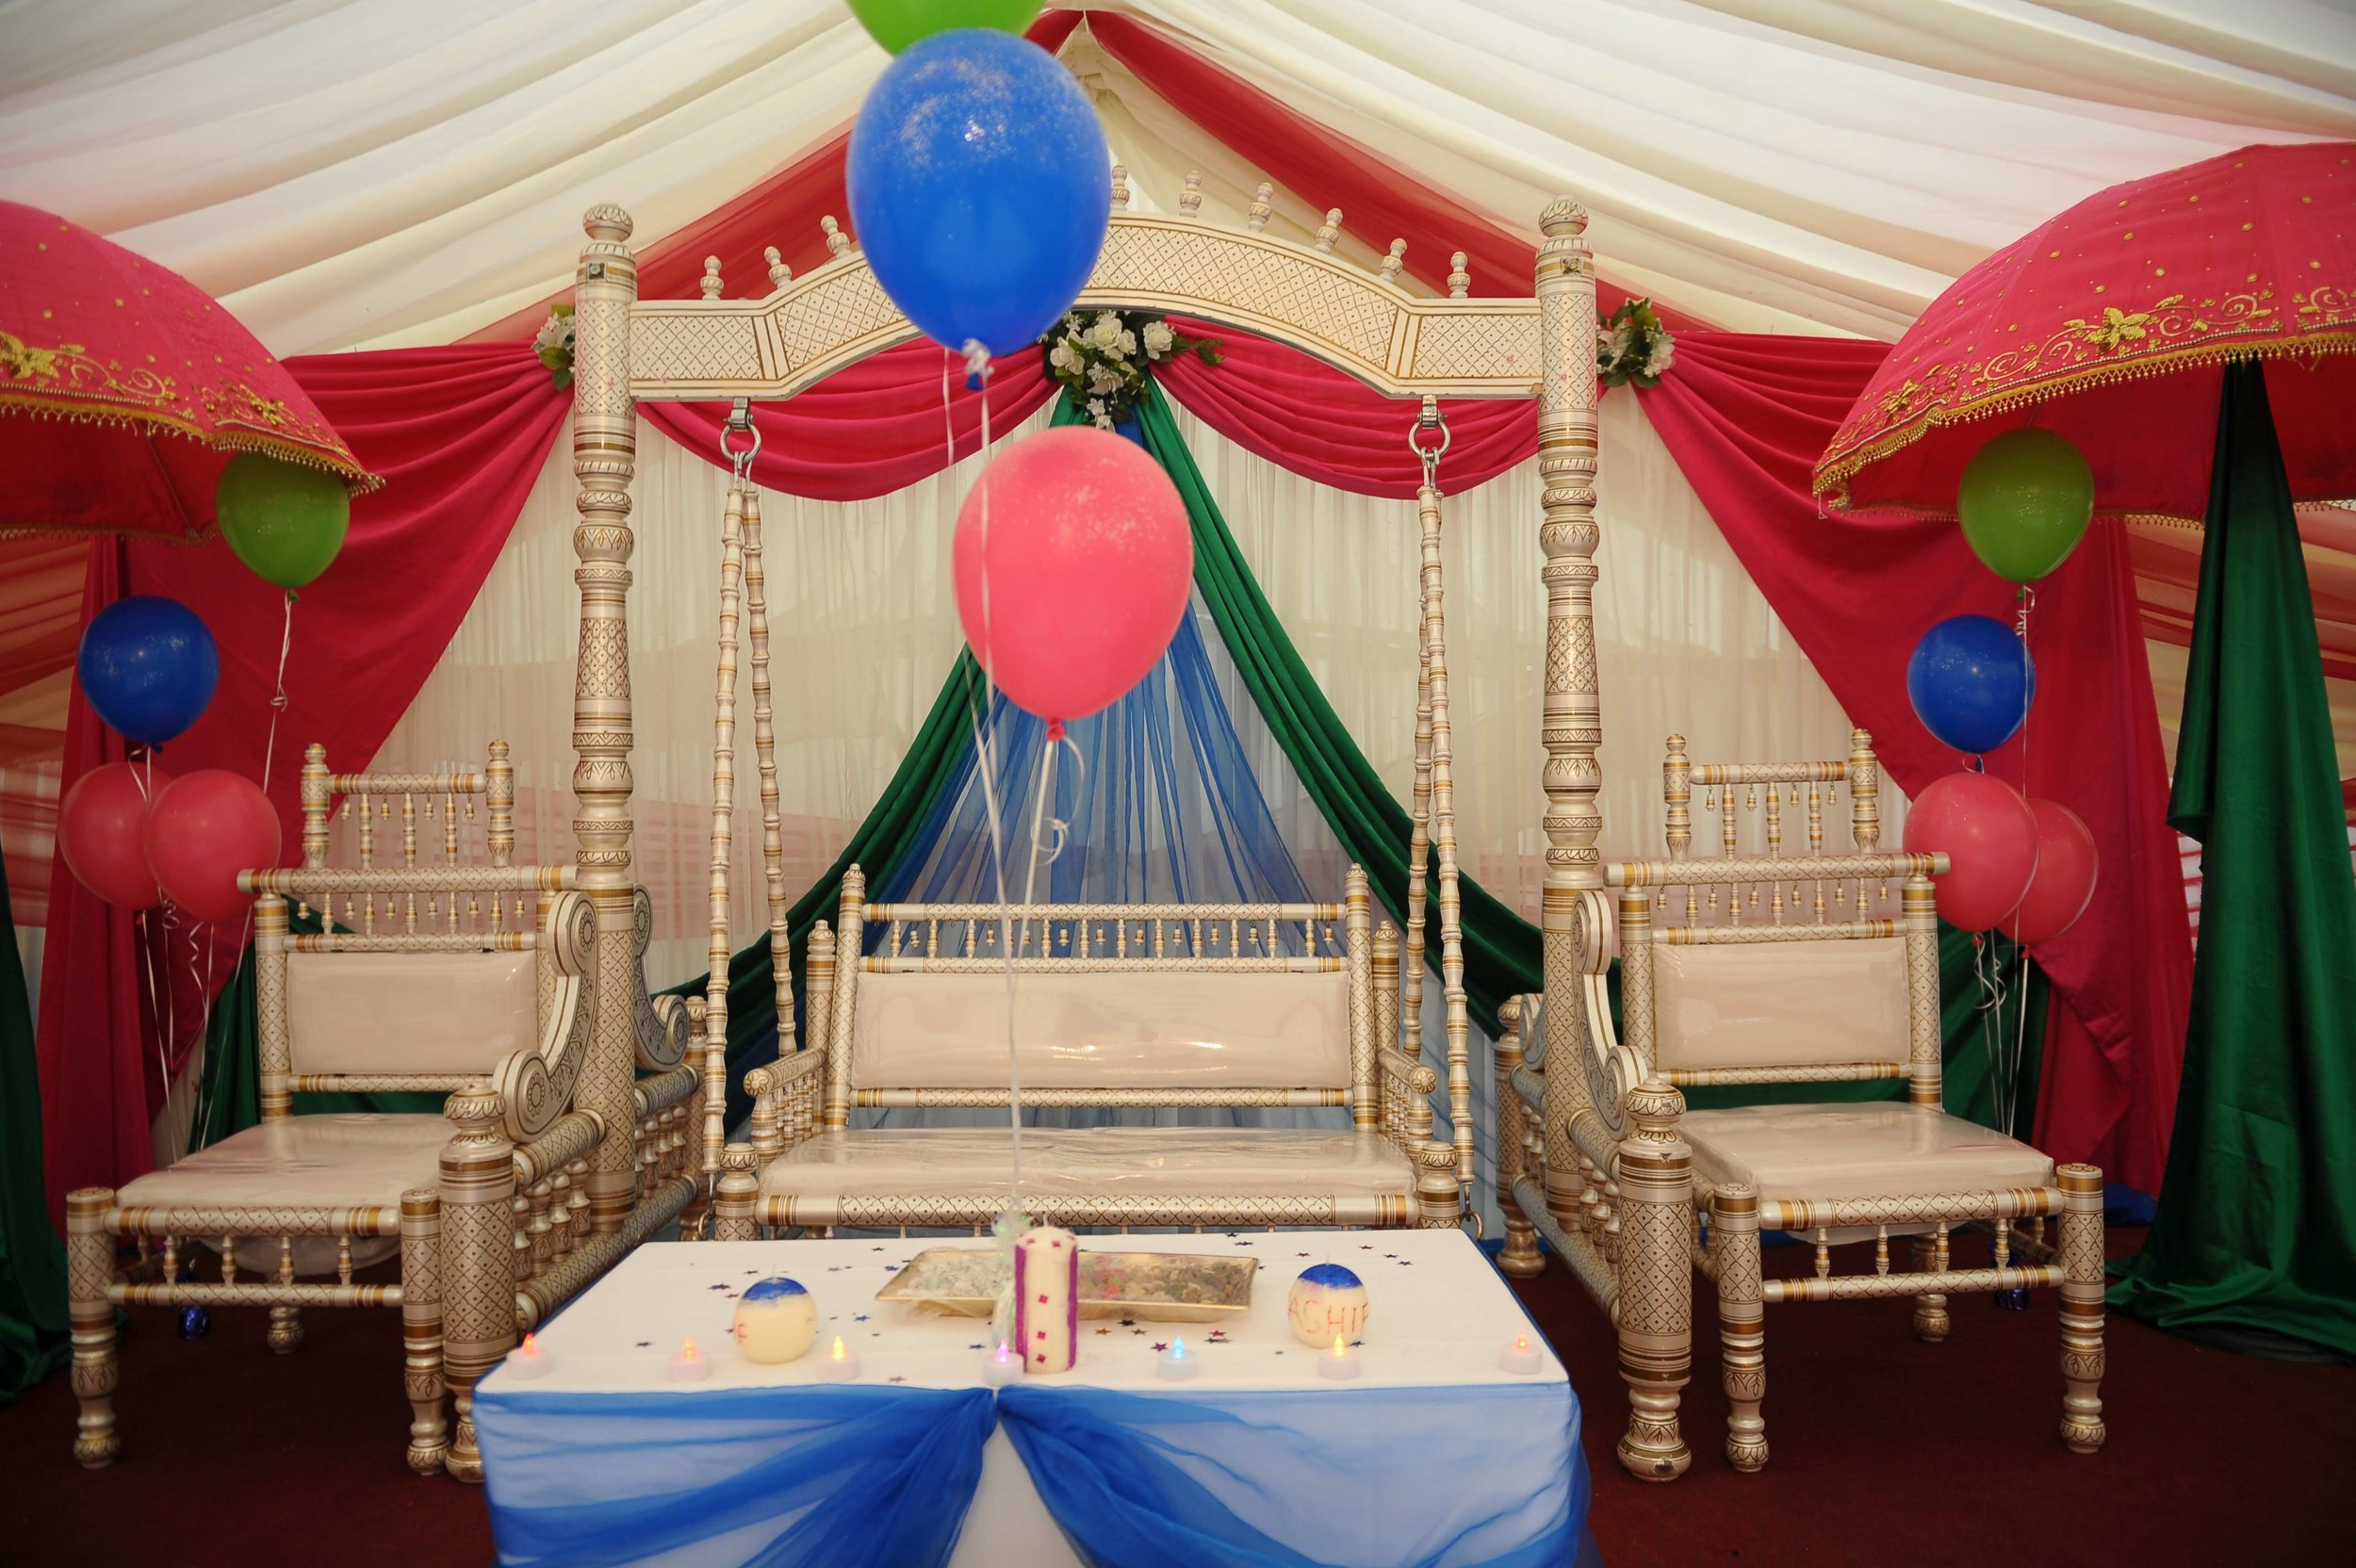 perfect location for a party at Venue5